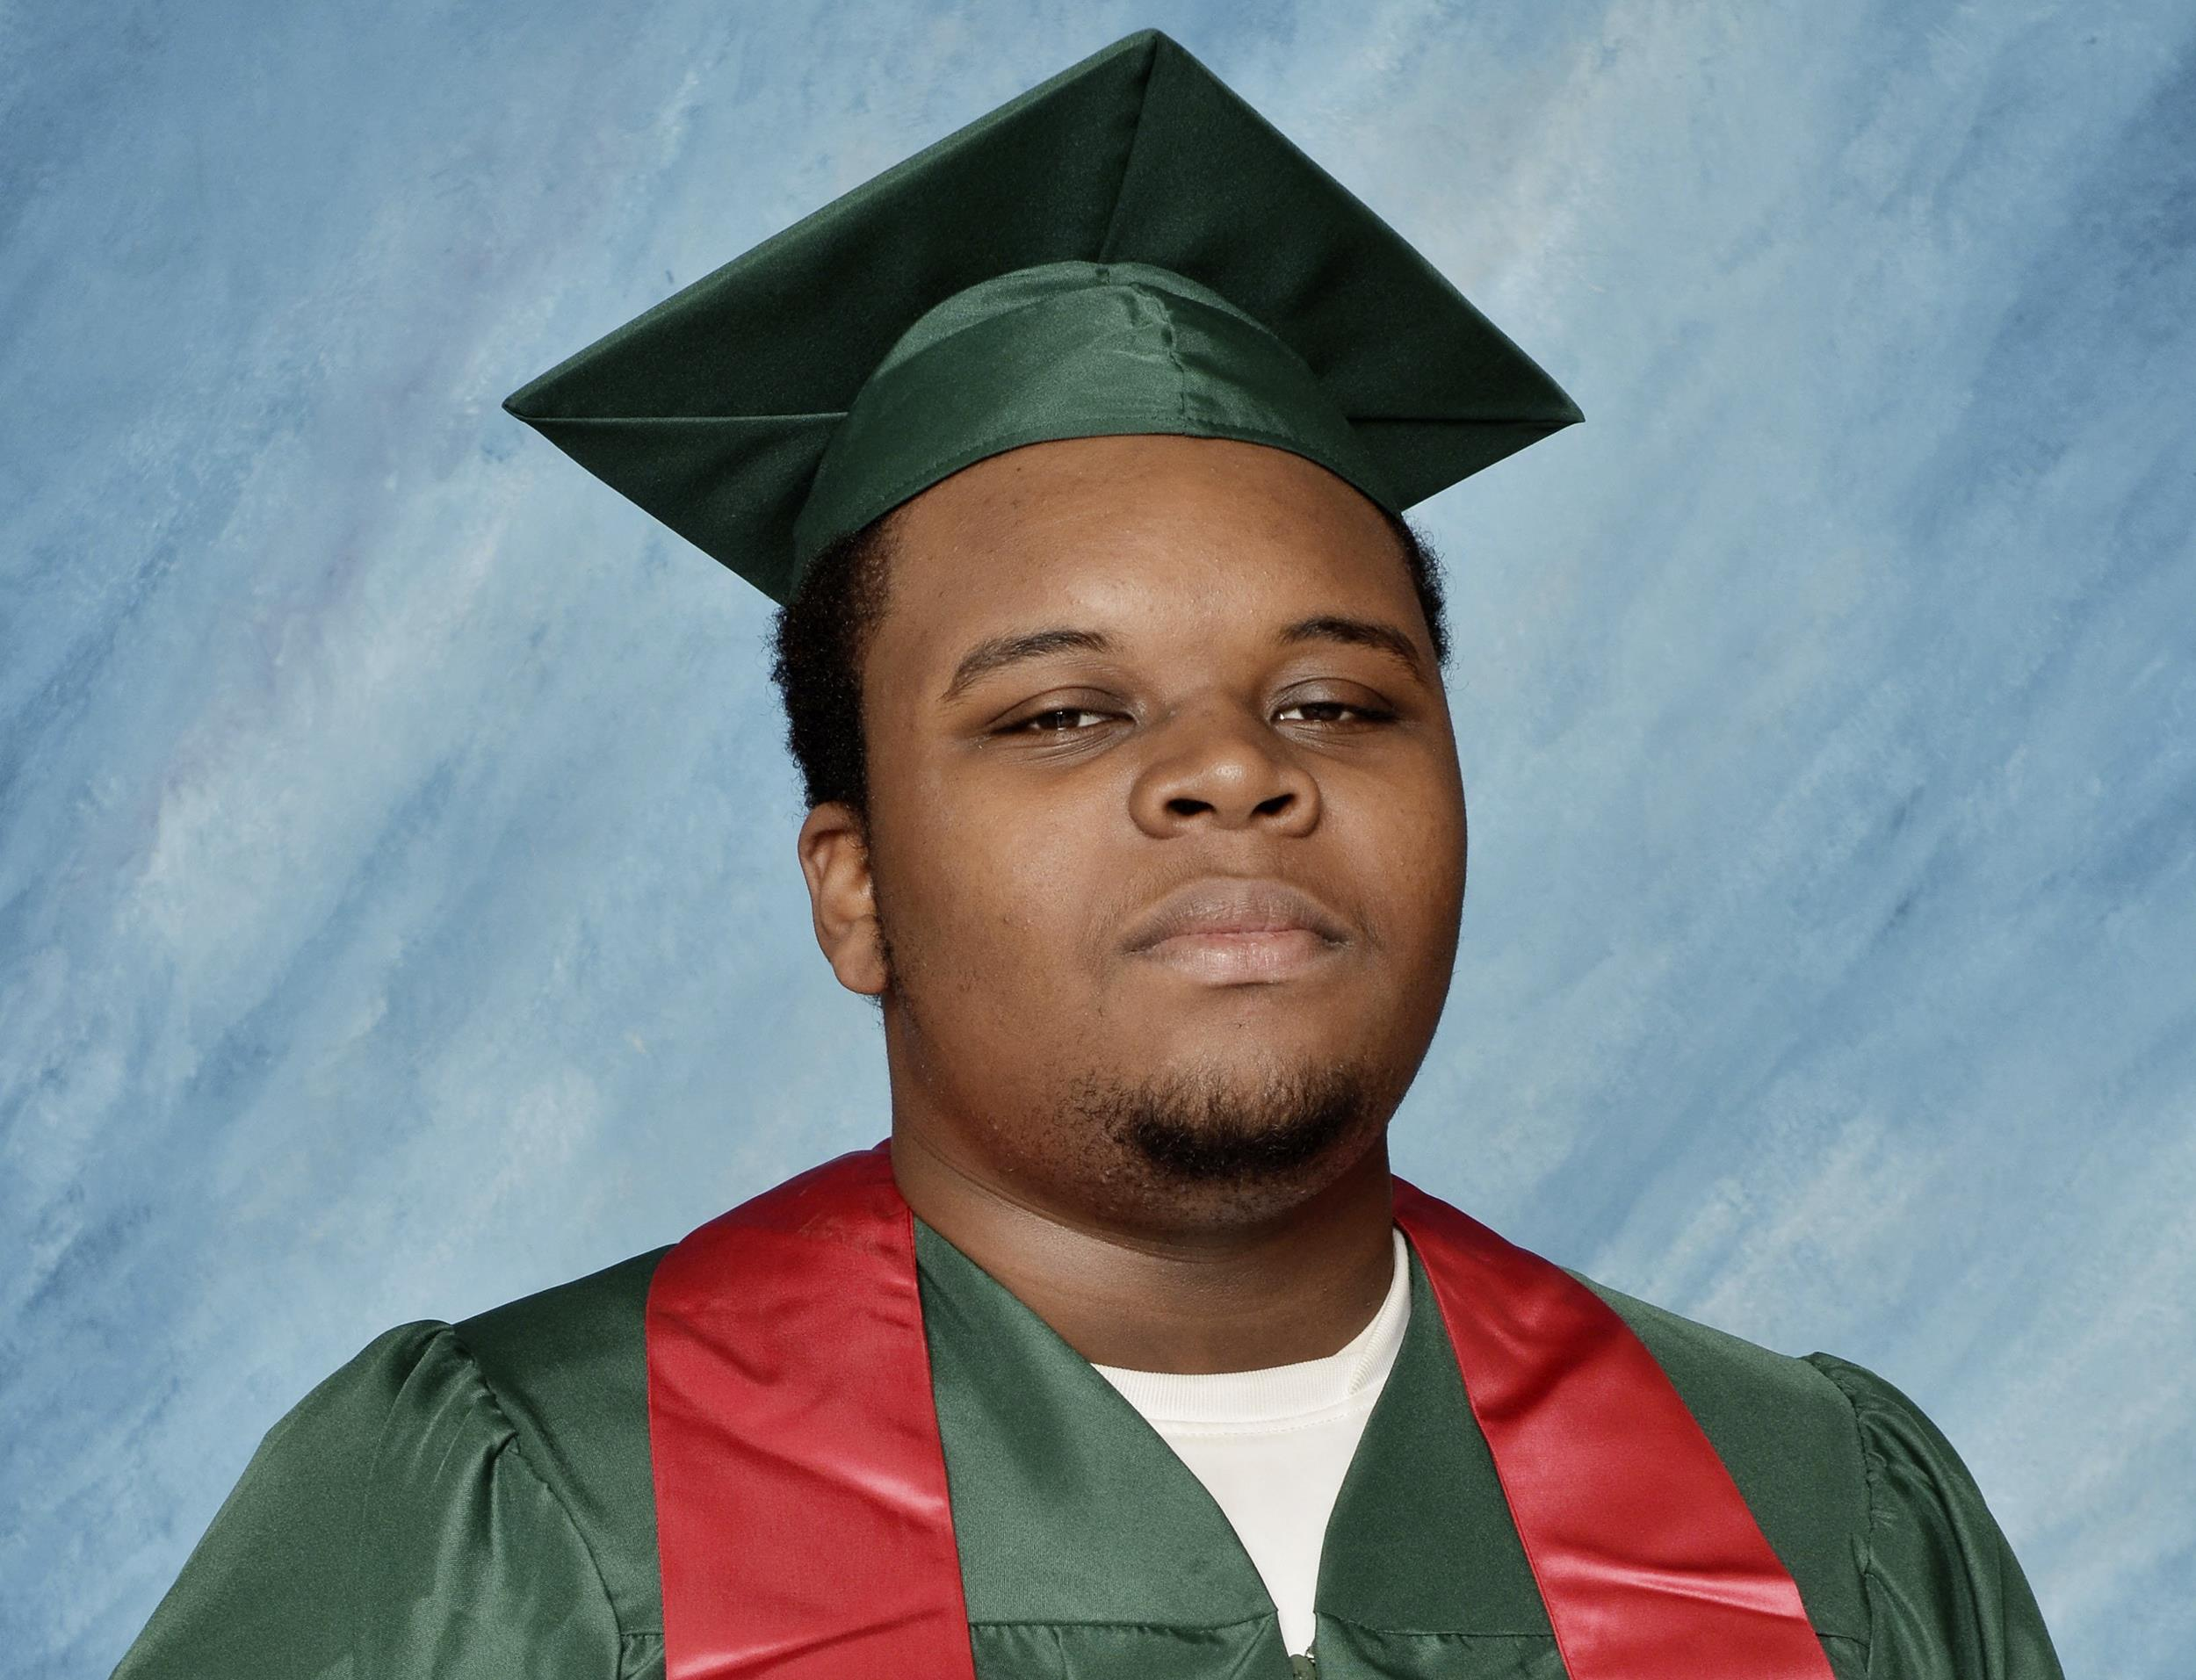 Image: Michael Brown poses for a photo in his cap and gown taken in March 2014